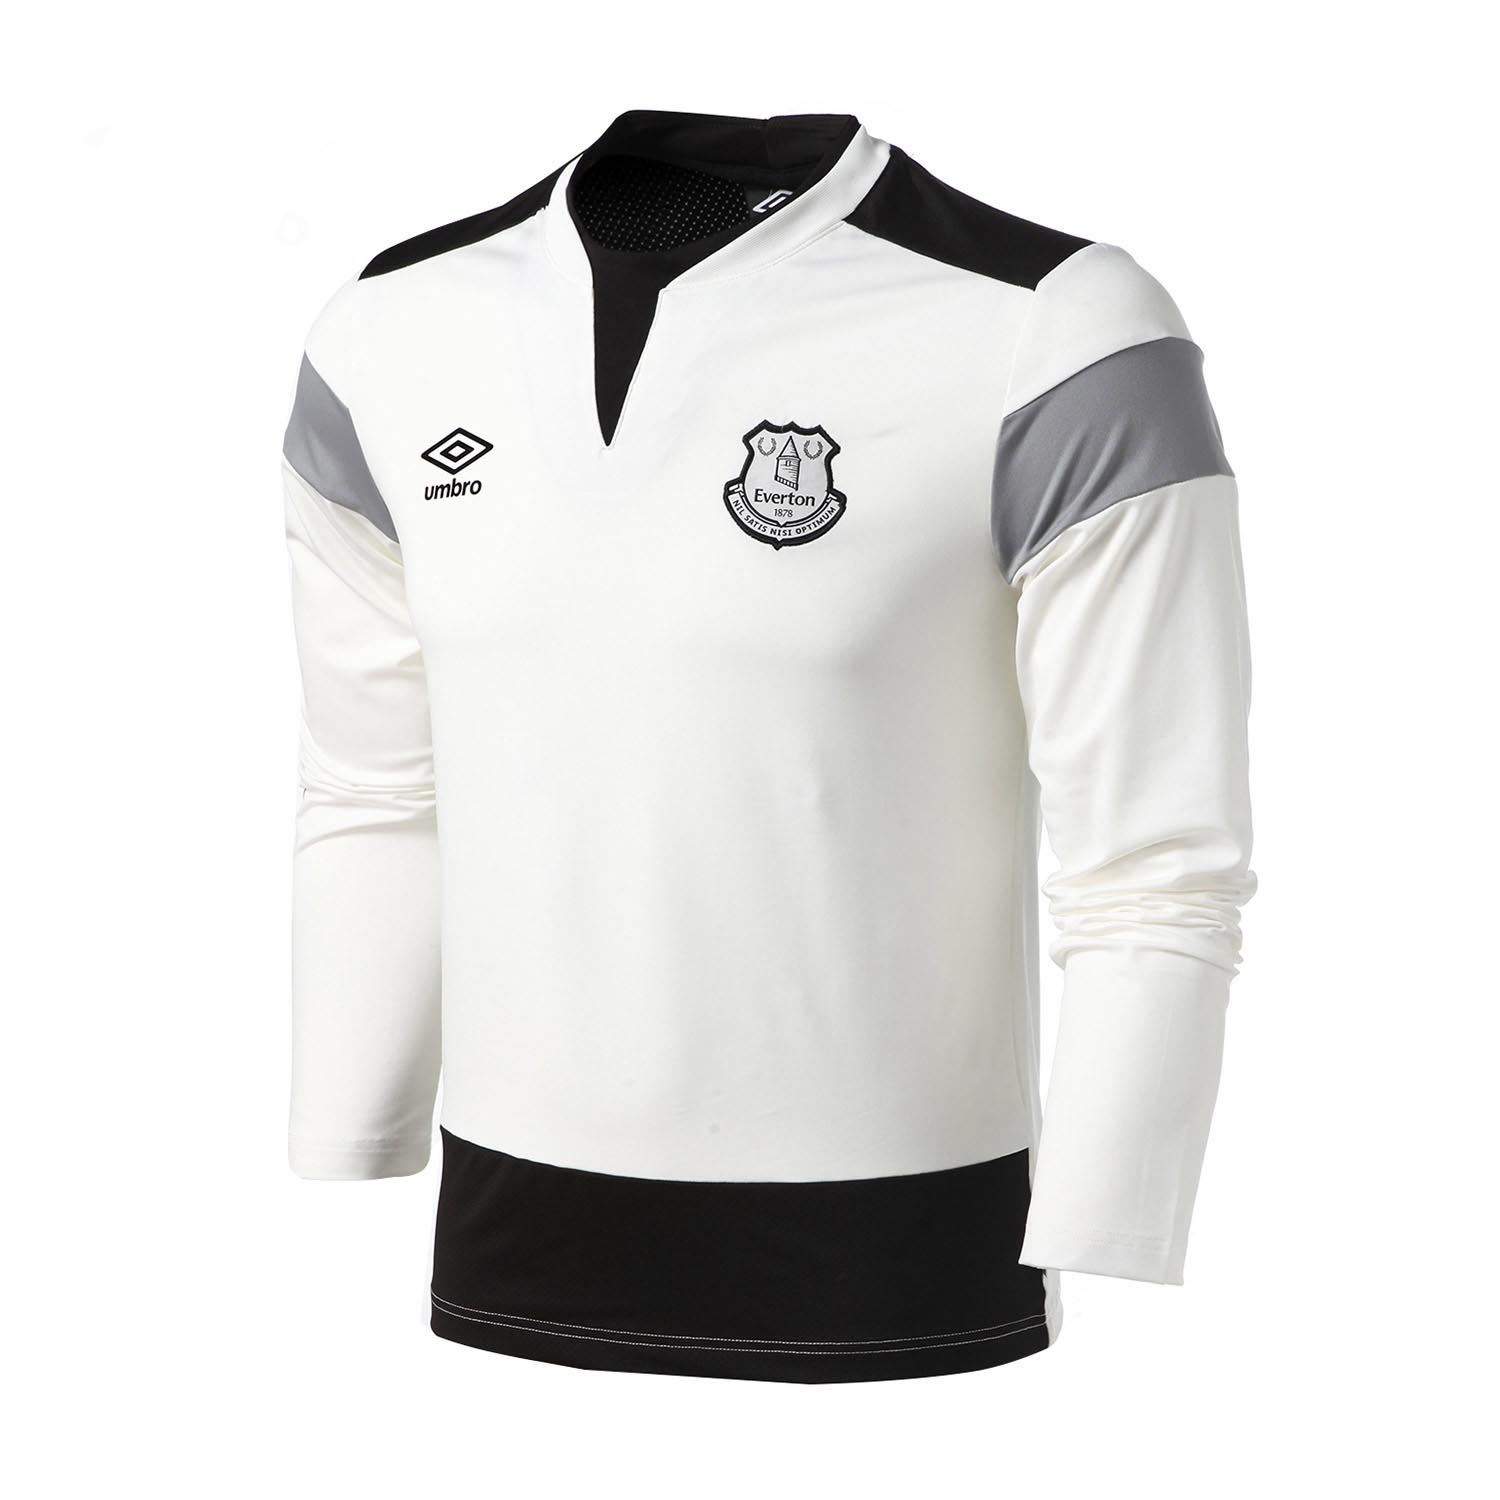 Umbro Men Everton Long Sleeved shirt Running Shirt Men Soccer Jerseys T-shirts Tops Slim Fit Shirt Quick Dry Sportswear Ucb63019 new 8 inch for huawei mediapad t1 8 0 3g s8 701u honor pad t1 s8 701 digitizer touch screen sensor lcd display panel assembly